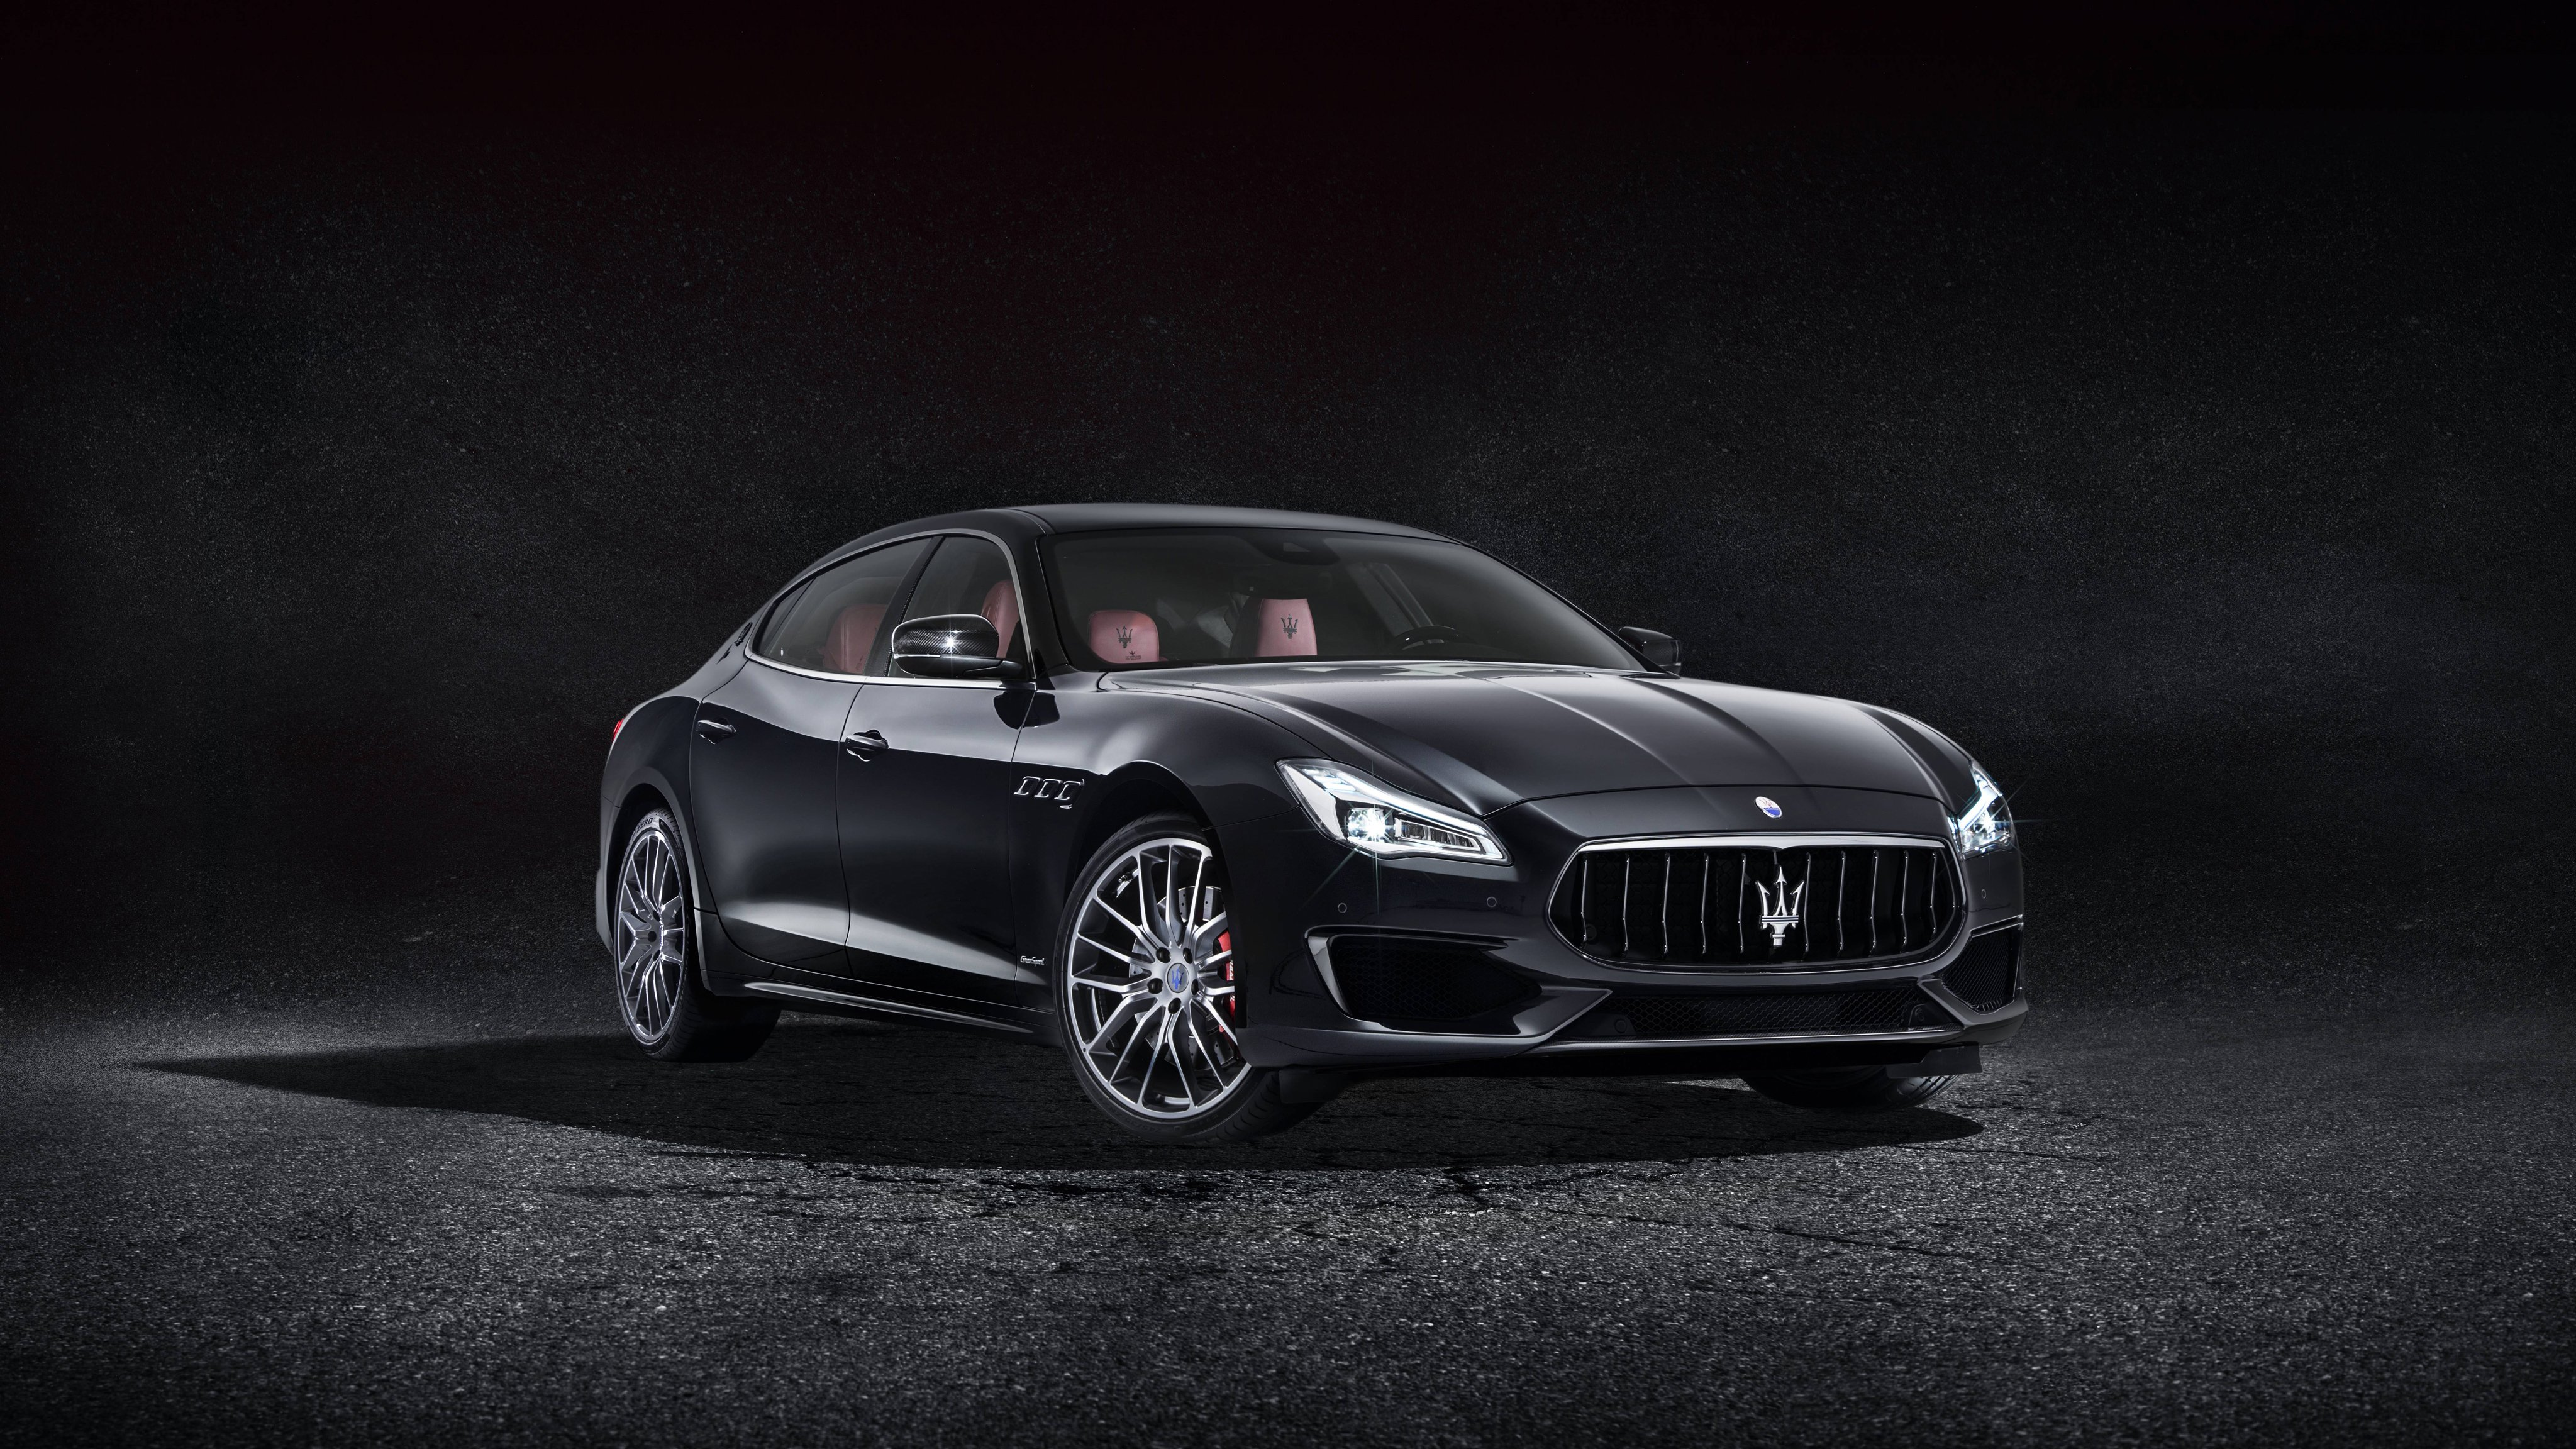 Maserati Quattroporte Wallpapers and Background Images   stmednet 4096x2304